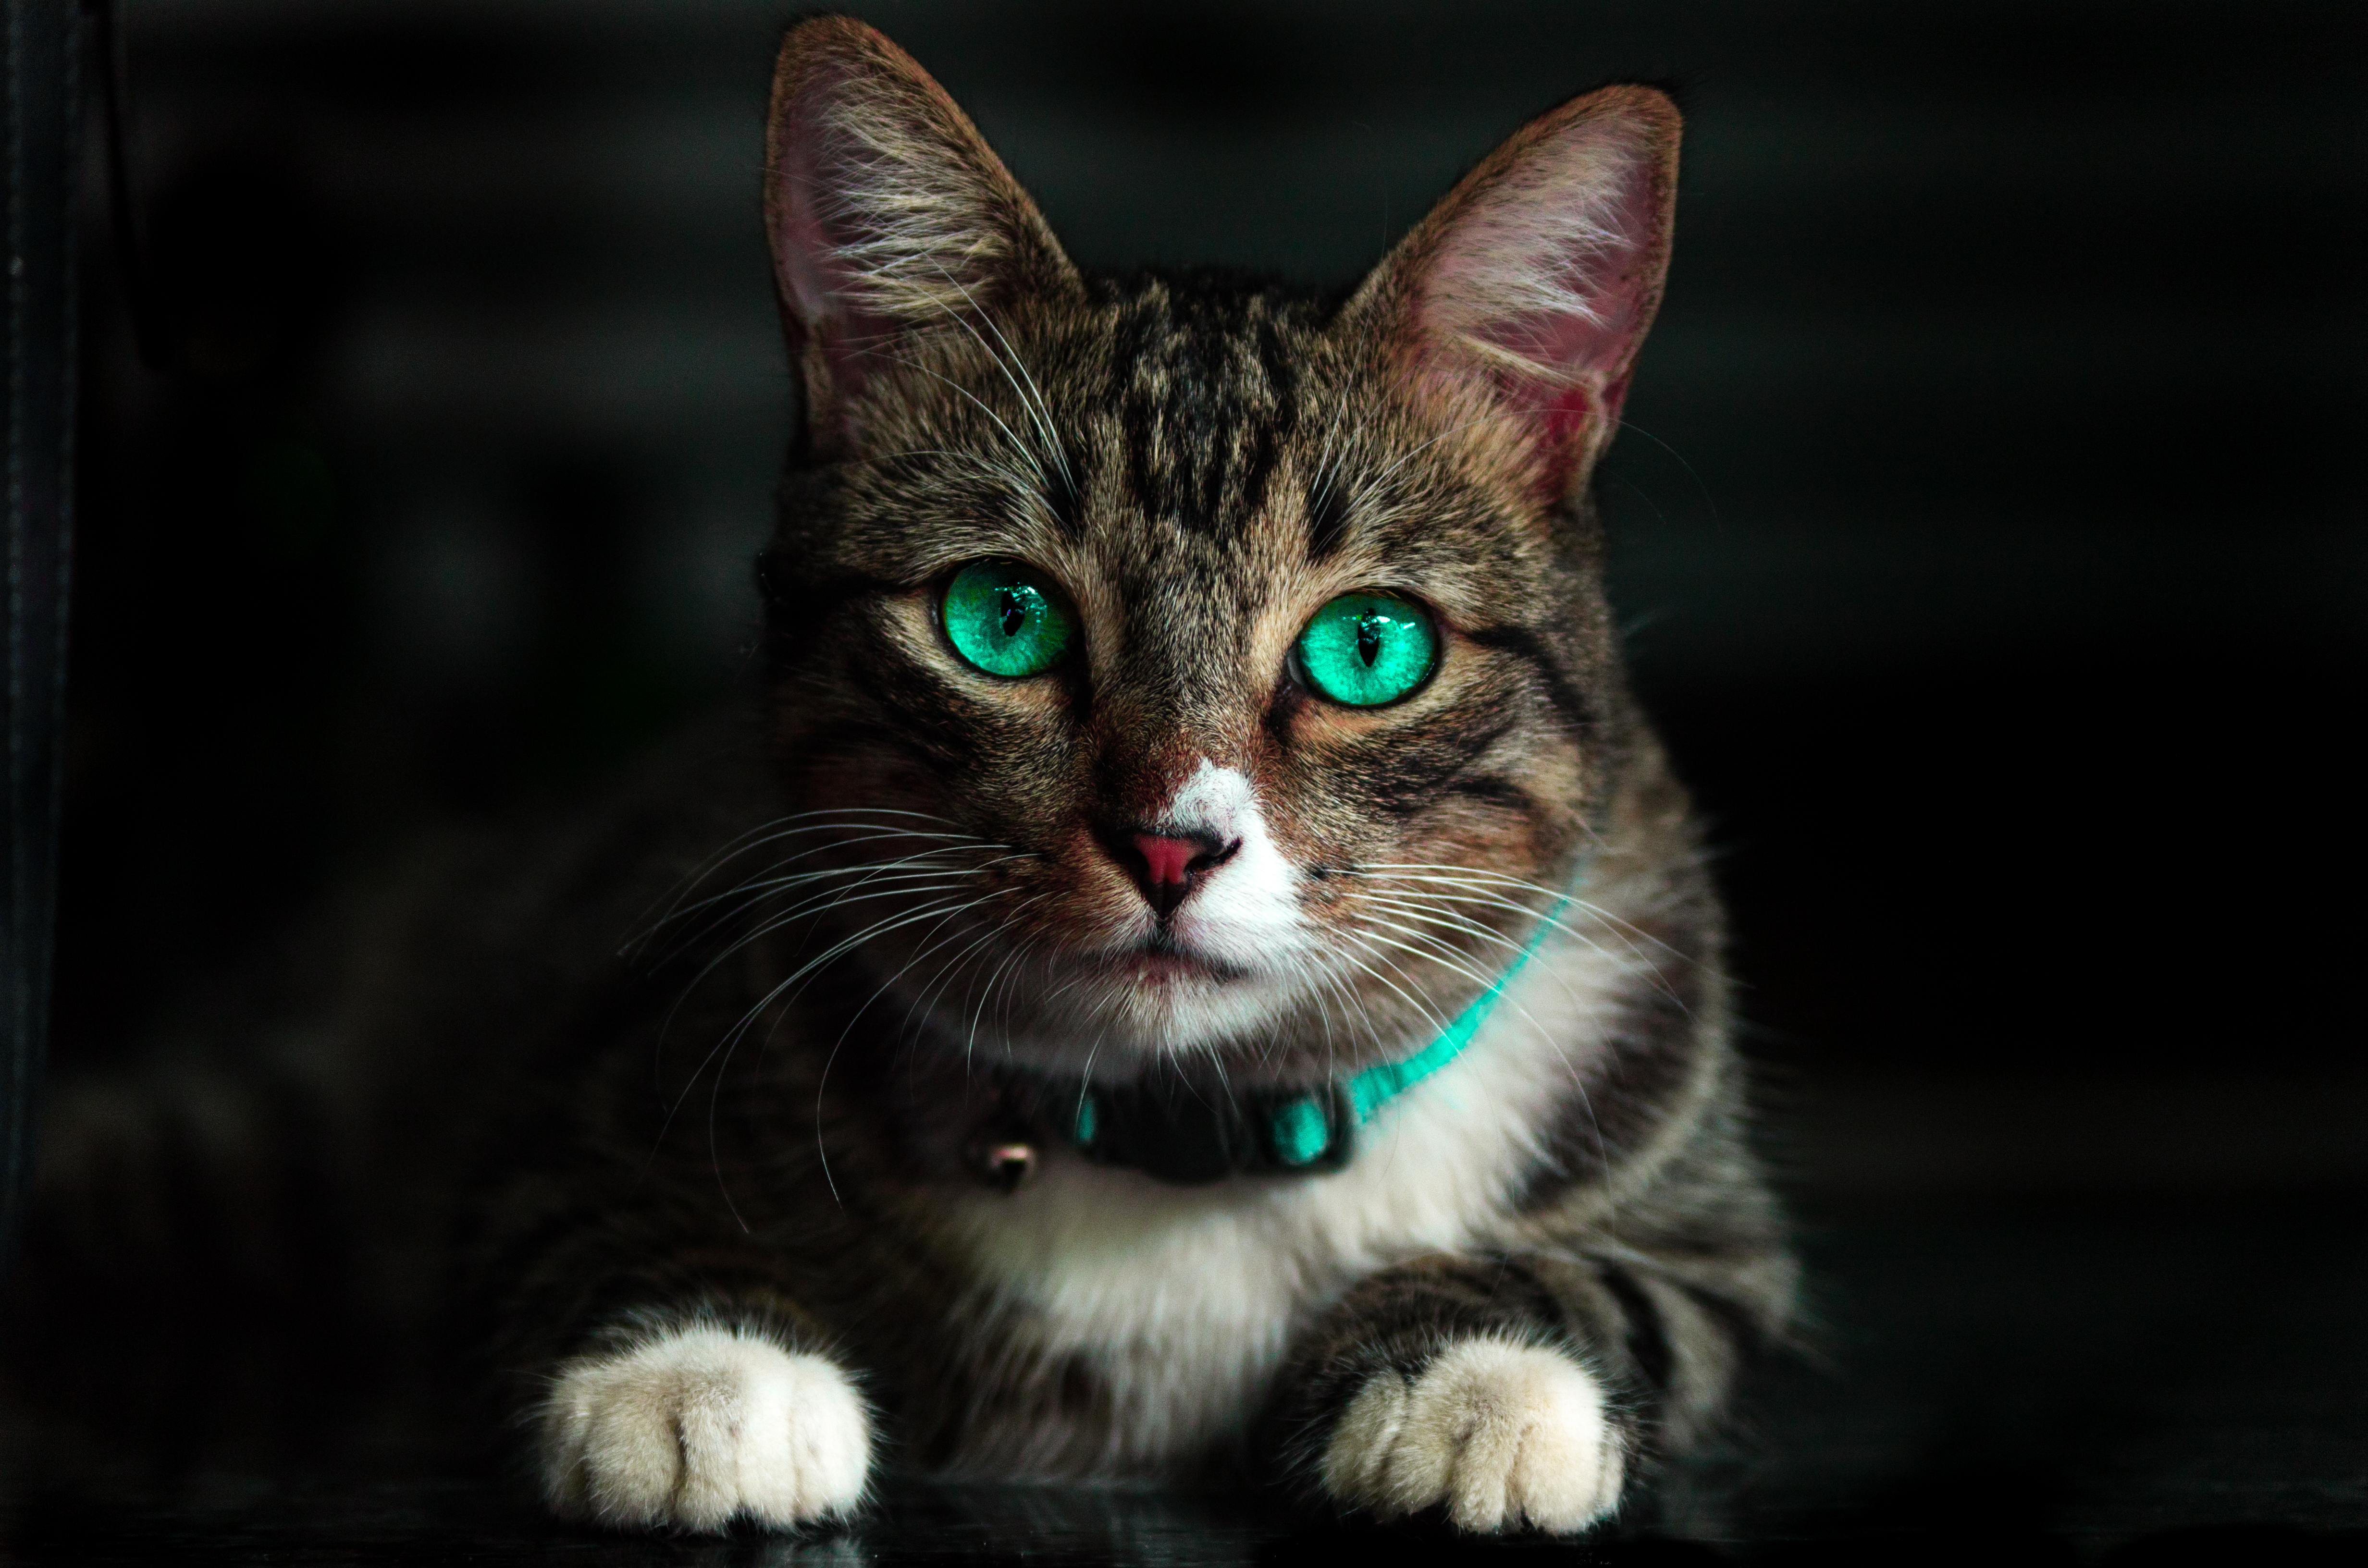 129335 Screensavers and Wallpapers Beautiful for phone. Download Animals, Cat, Beautiful, Sight, Opinion, Green Eyed, Green-Eyed pictures for free